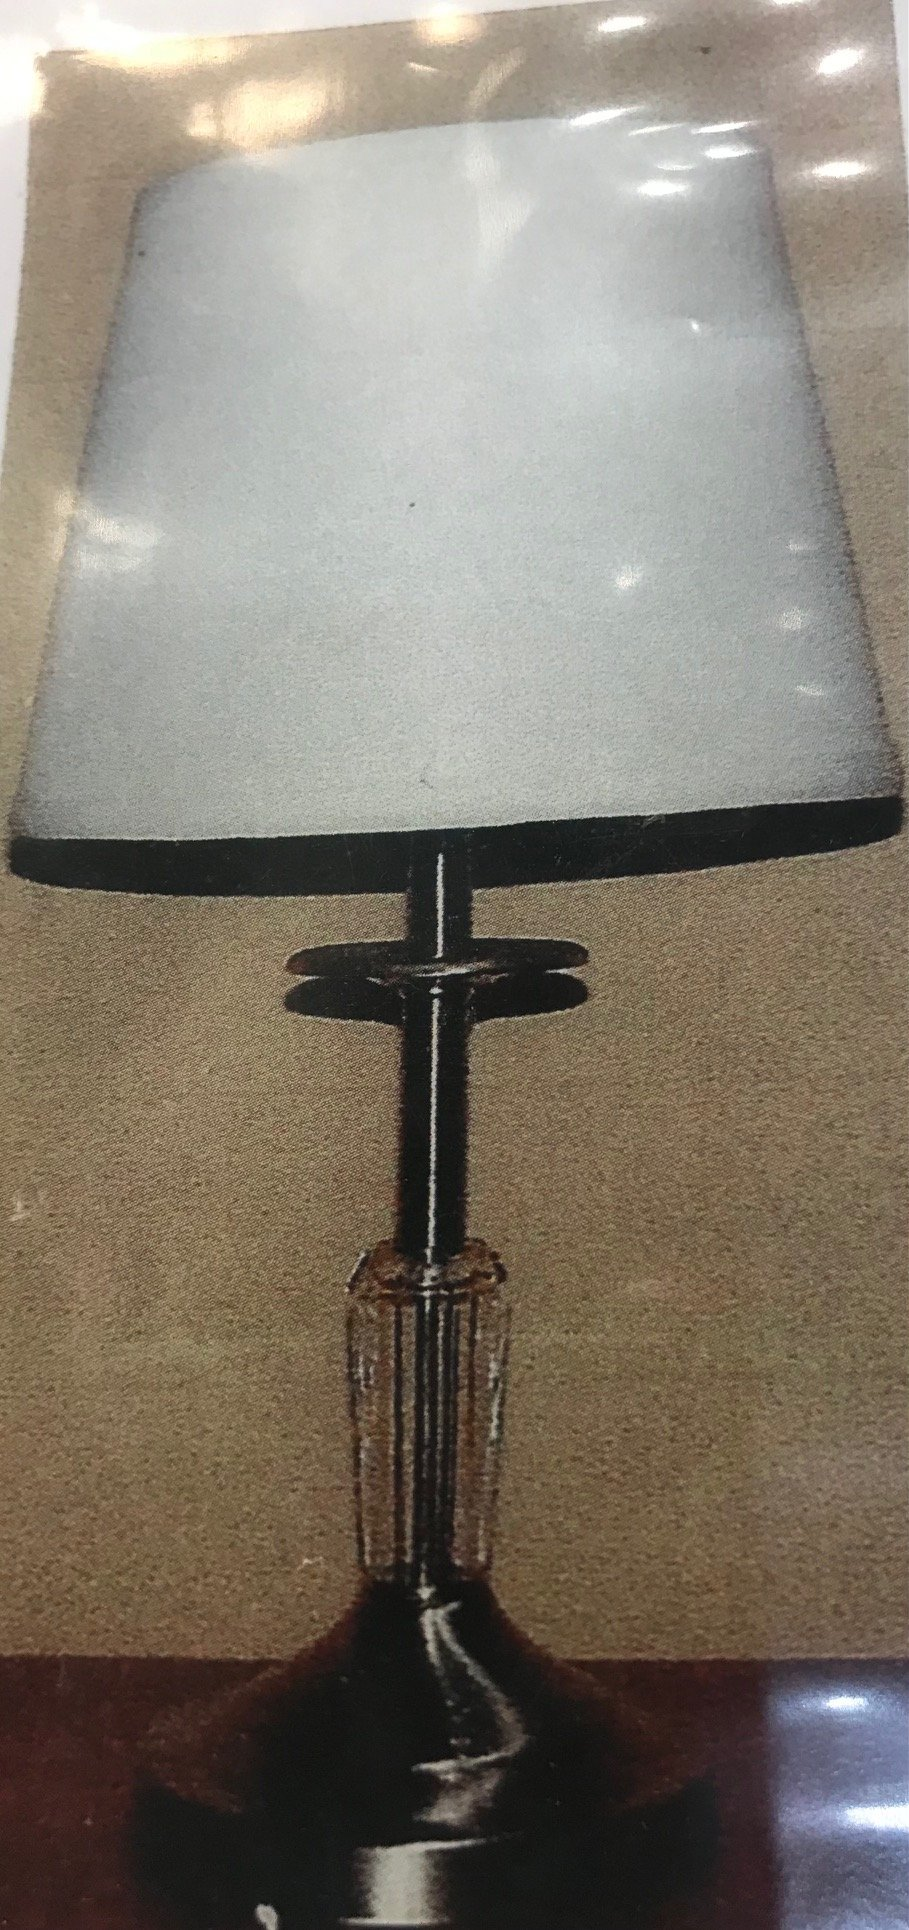 252 Table Lamp Made in Canada Available in Antique Brass  or Brushed Chrome Regular Price $109.99 Sale Price $76.99